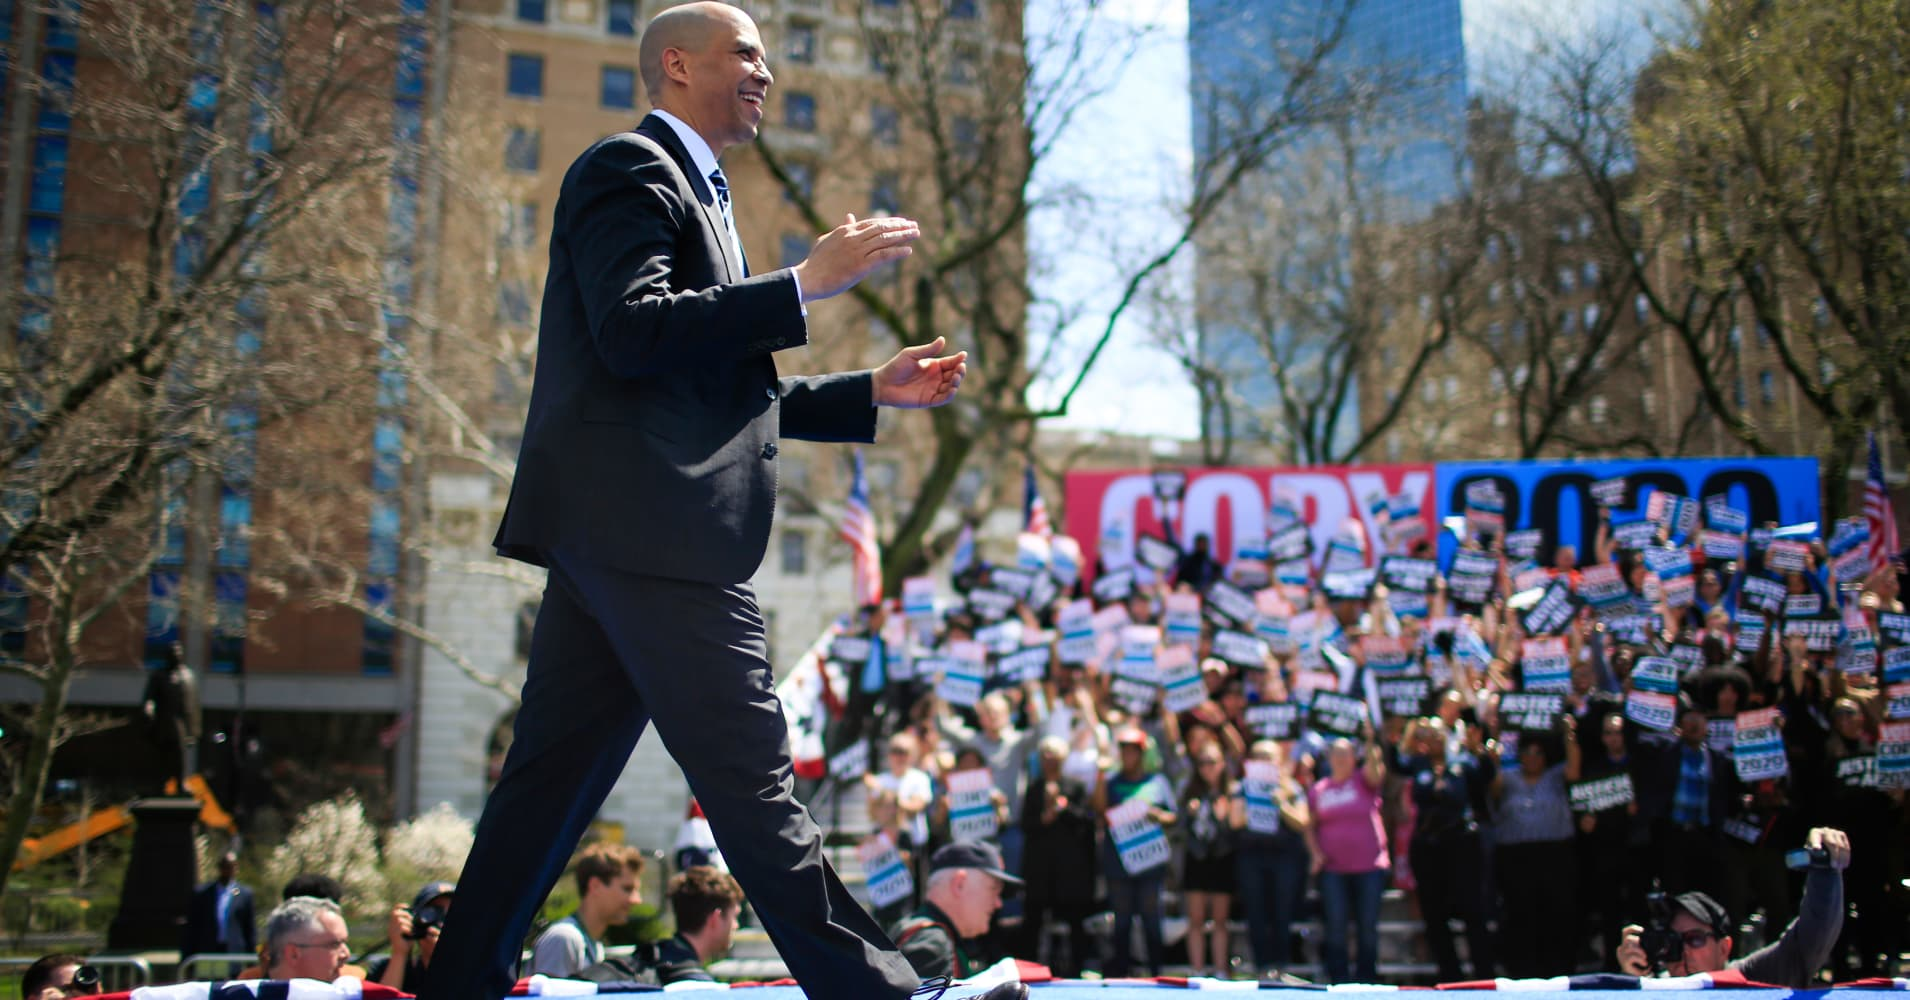 Cory Booker wants to give 'baby bonds' to every newborn. Here's how that would work